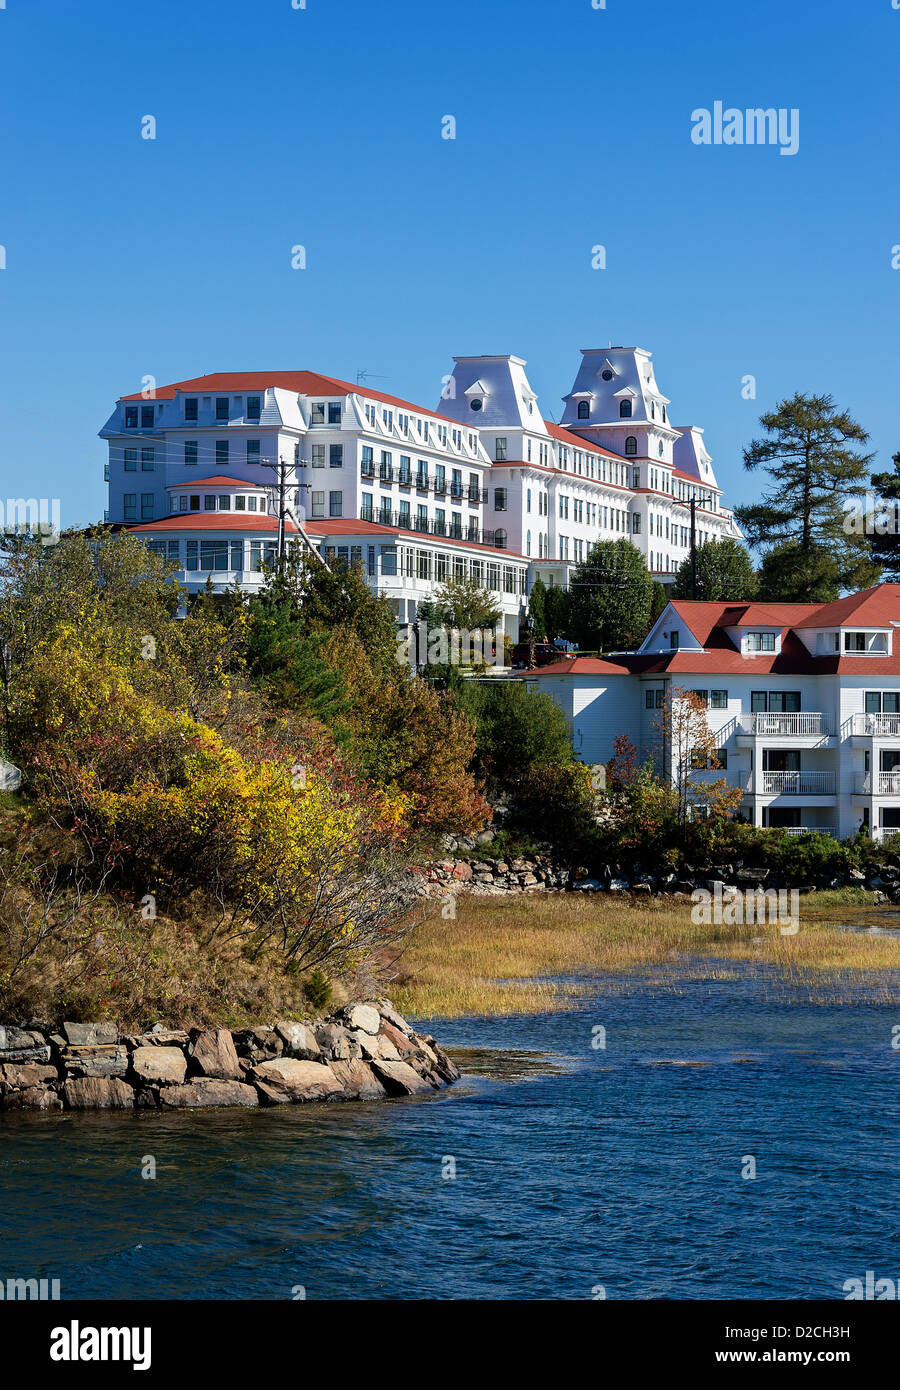 The Wentworth by the Sea (formerly The Hotel Wentworth), historic grand hotel in New Castle, New Hampshire, USA Stock Photo